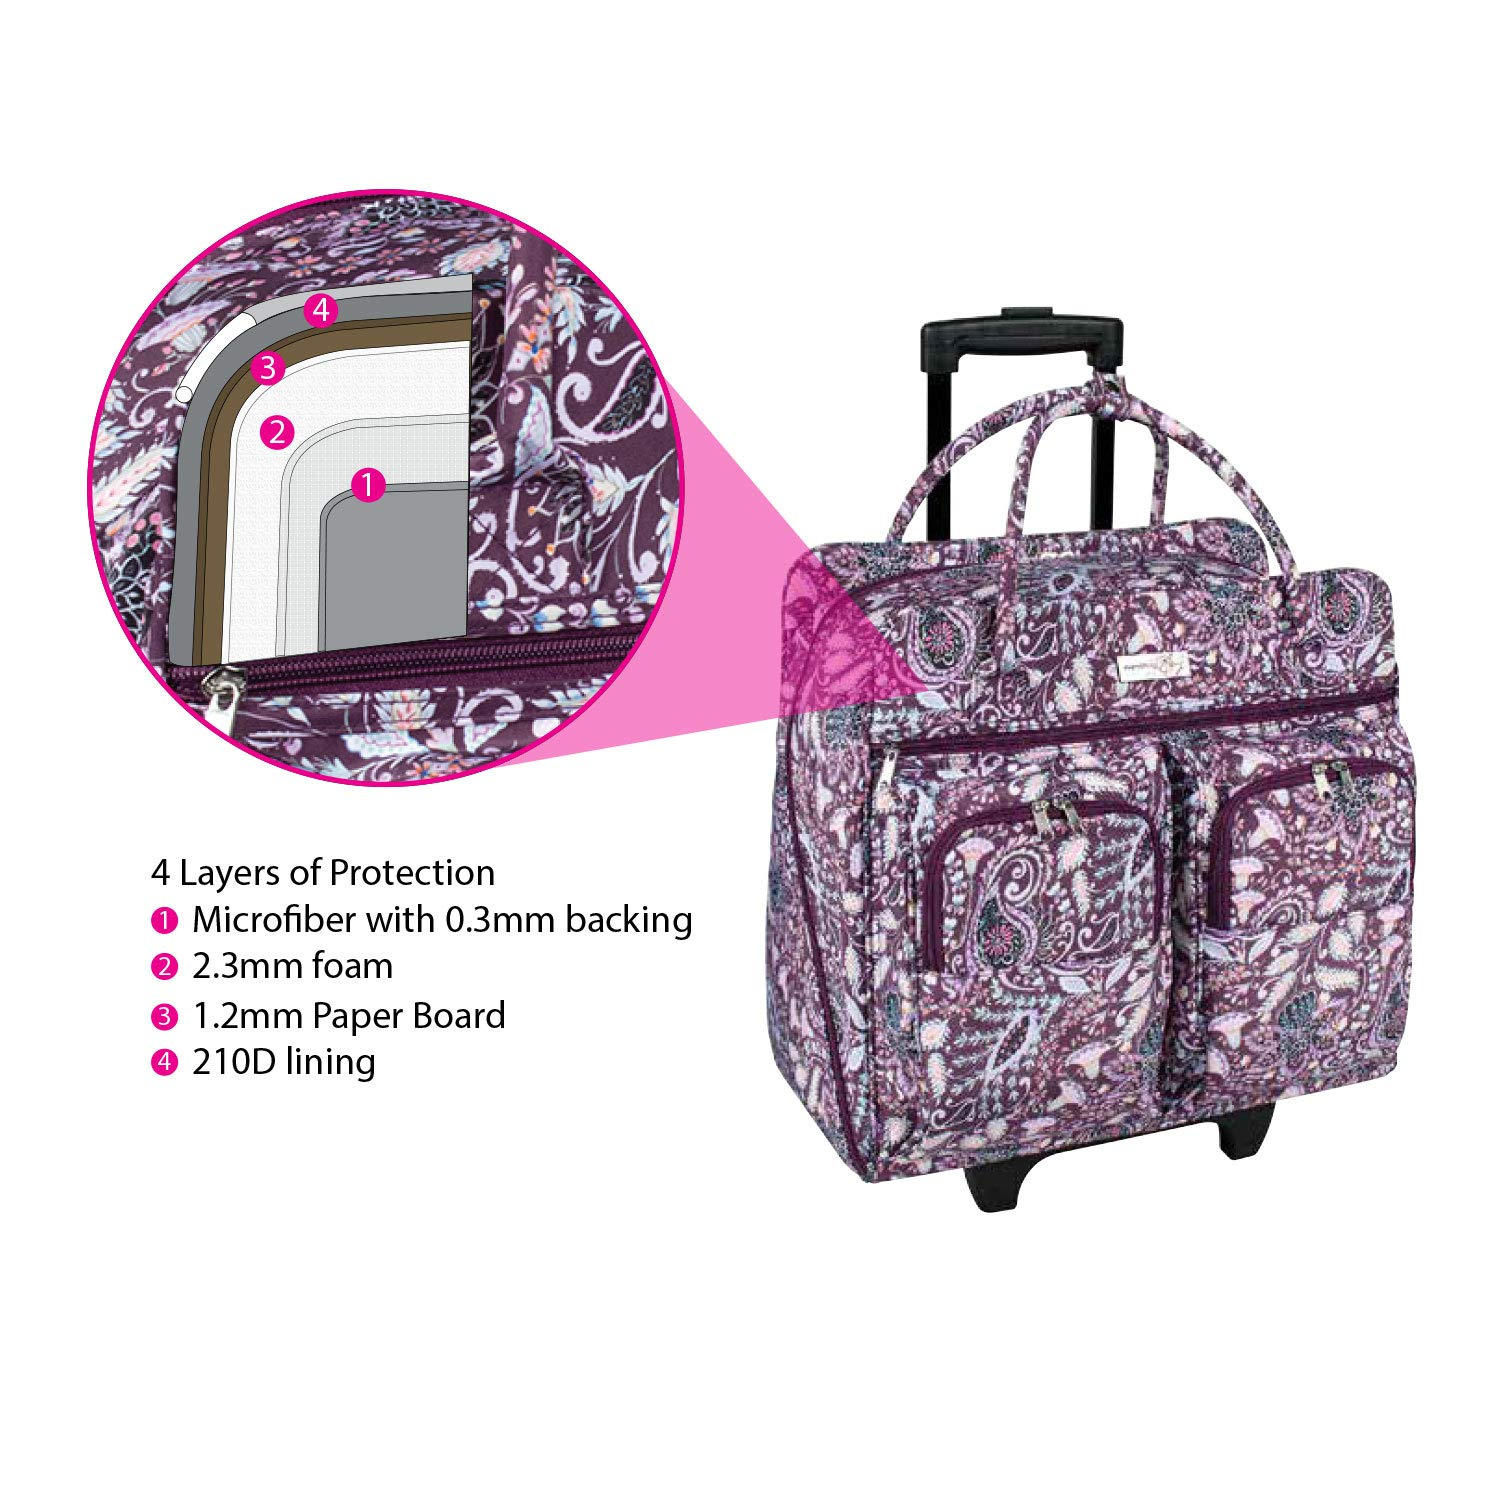 Sewing Machine Case Fits Most Brother /& Singer Sewing Machines Everything Mary Deluxe Purple Paisley Floral Rolling Sewing Case by Dena Designs Sewing Machine Bag with Dual Handles /& Wheels